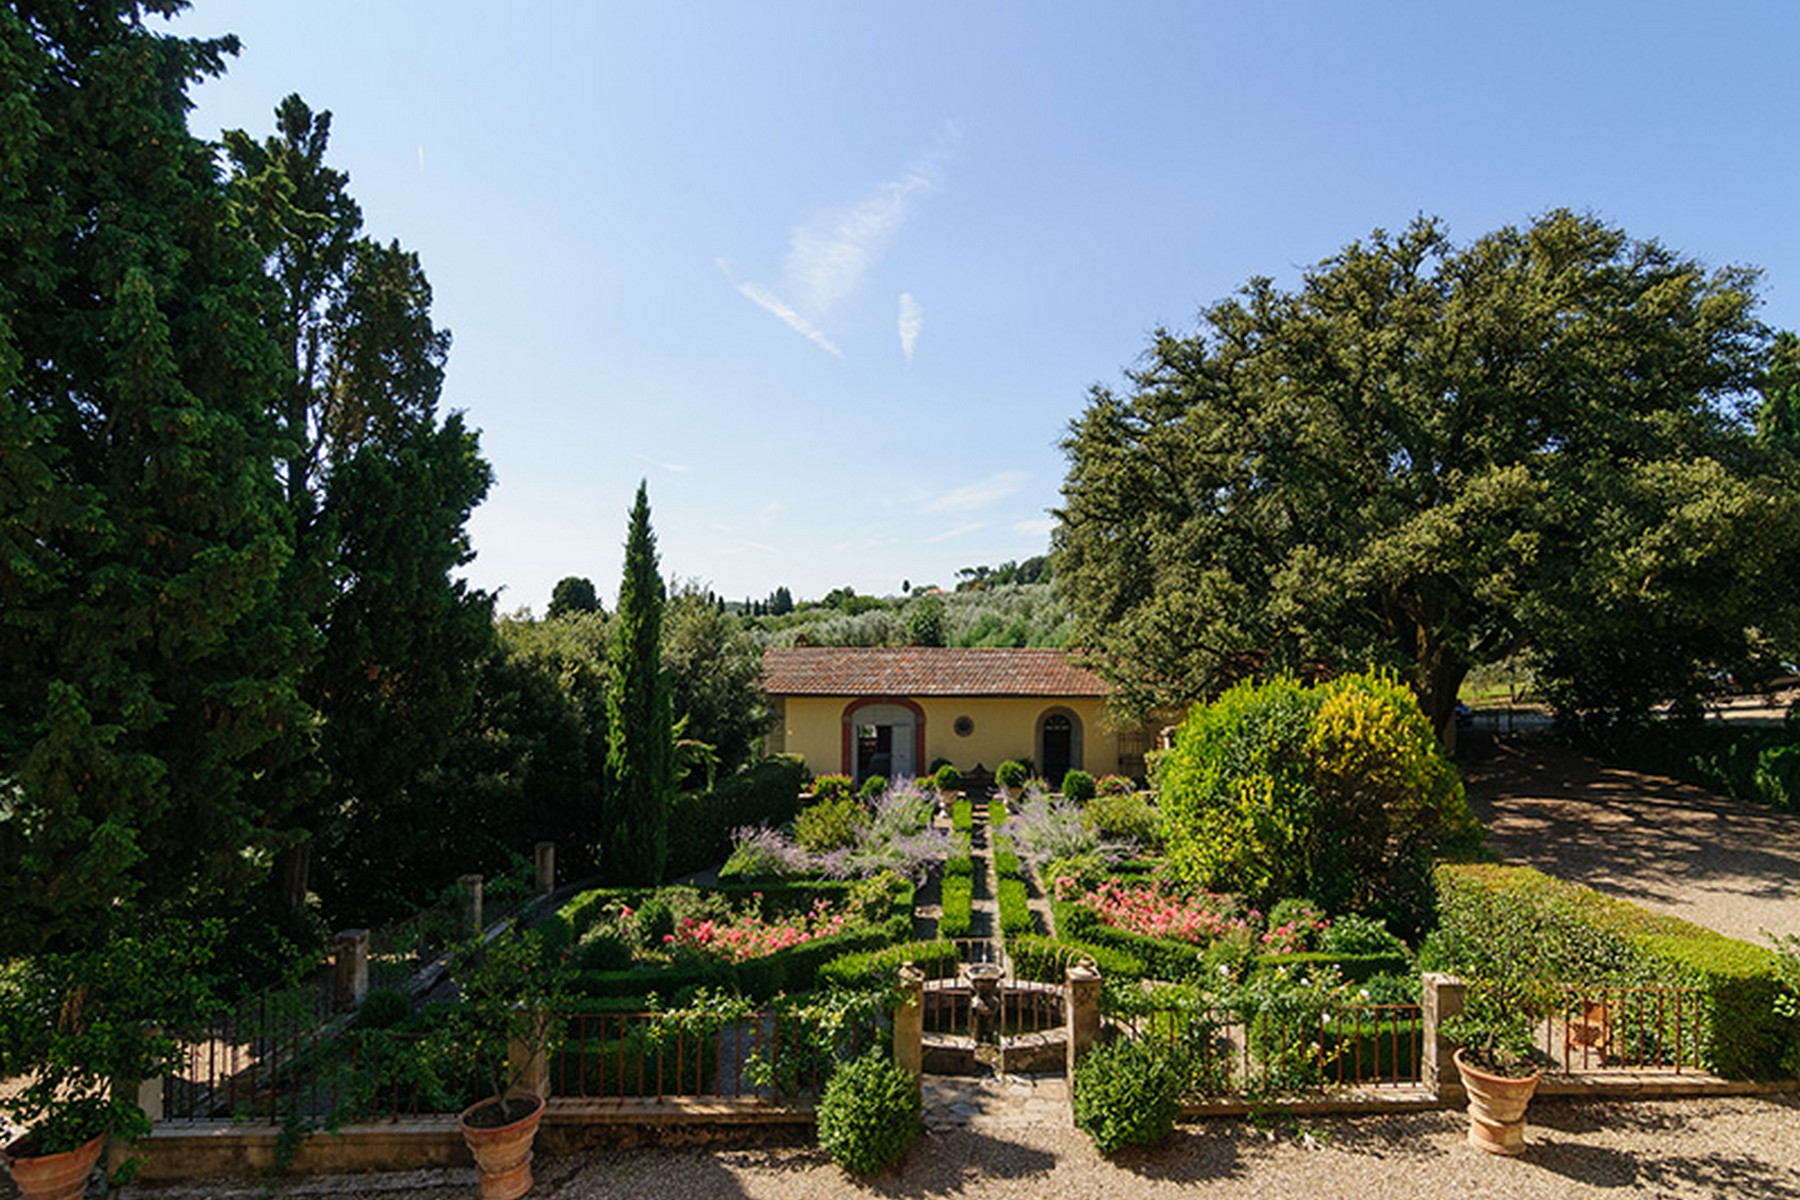 Additional photo for property listing at Splendid villa between Siena and Arezzo Monte San Savino Arezzo, Arezzo 52048 Italien